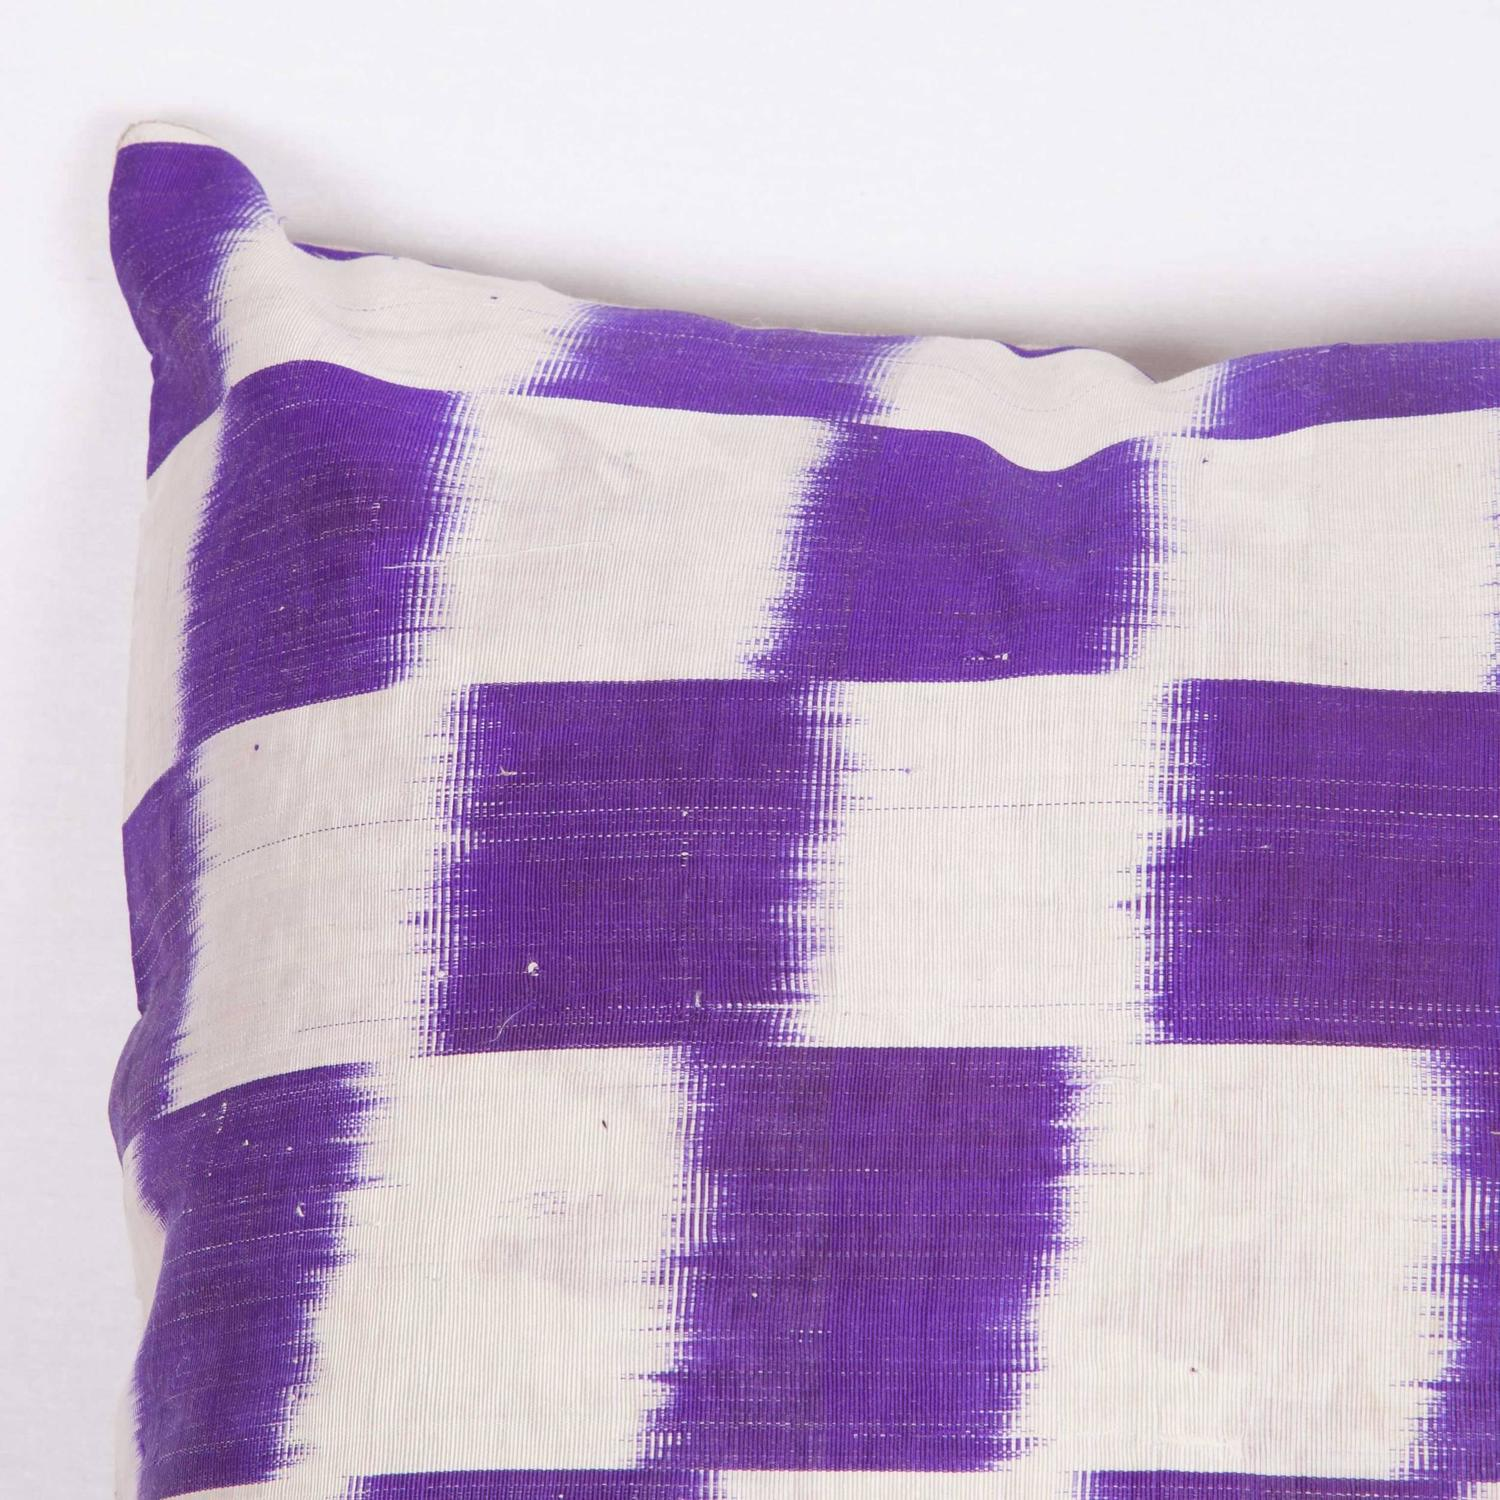 1900s hair styles ikat pillow made out of an 1900s uzbek ikat for at 6869